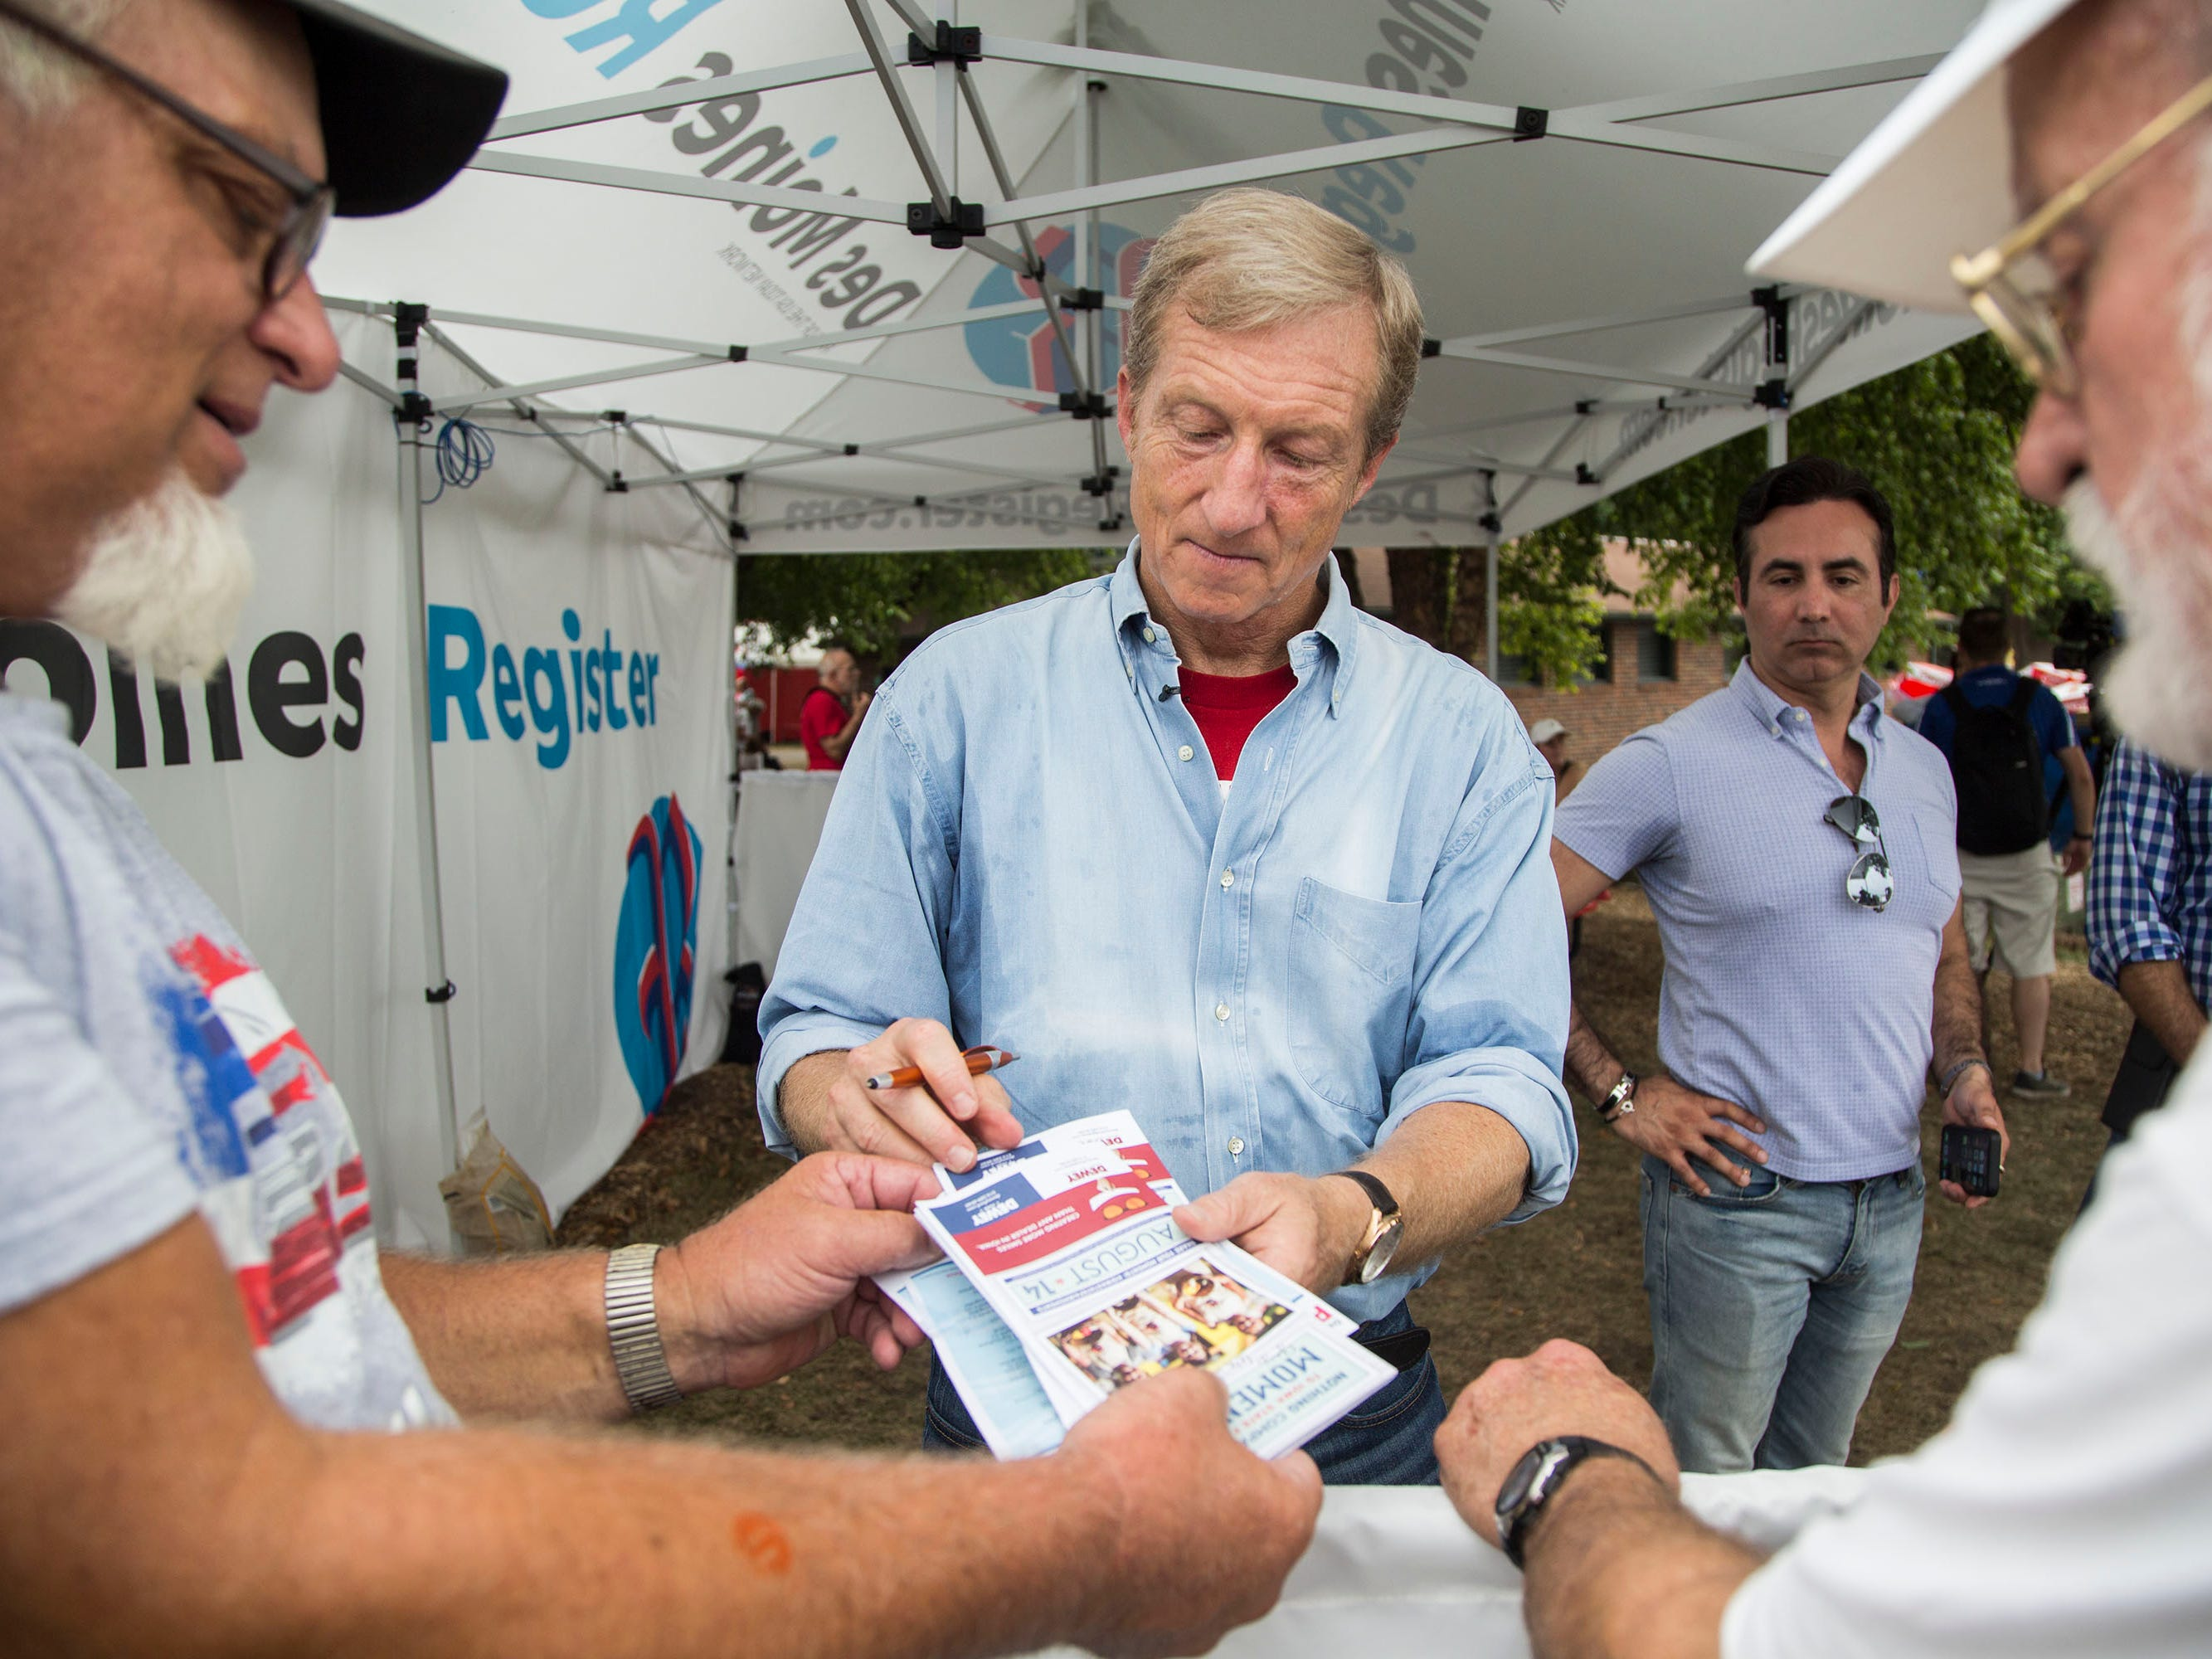 Tom Steyer, a Democratic donor and activist from California, signs autographs after speaking at the Des Moines Register Political Soapbox on Tuesday, Aug. 14, 2018, at the Iowa State Fair.